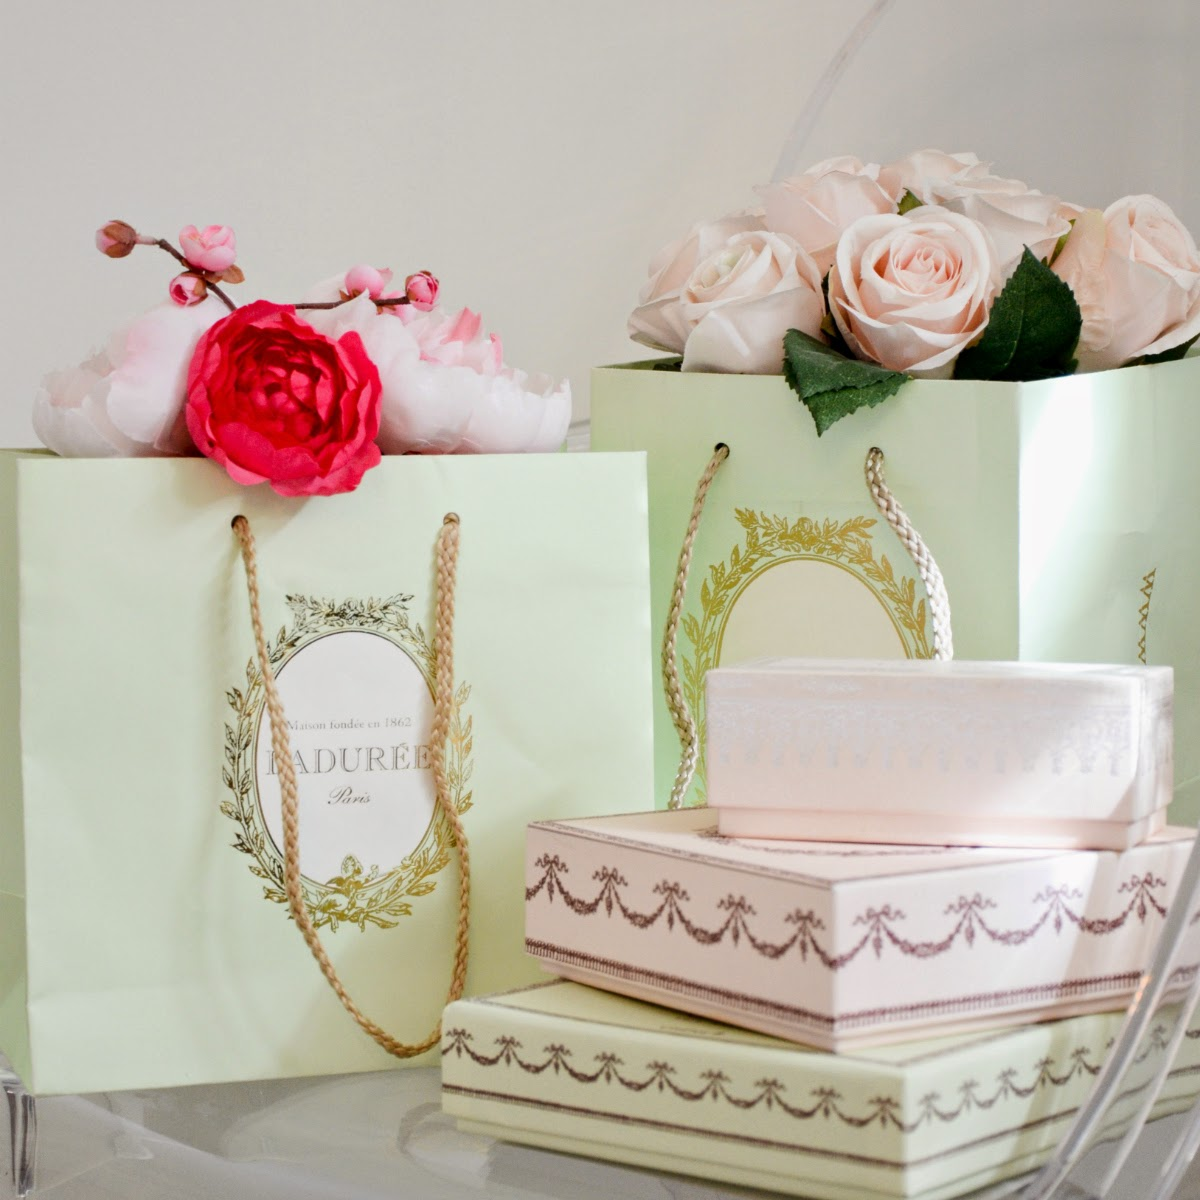 Laure mint coloured bags and roses and peonies- spring inspired look